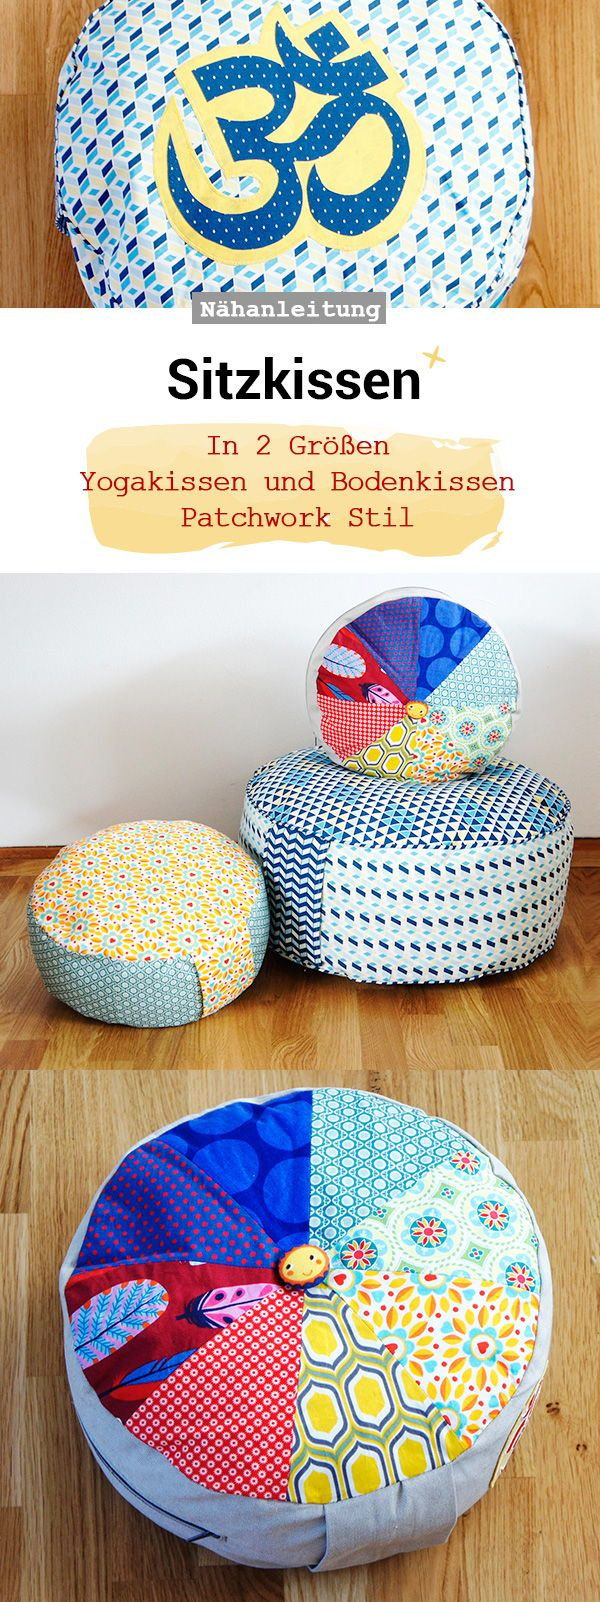 Floor cushions in two sizes: yoga cushions and seat cushions